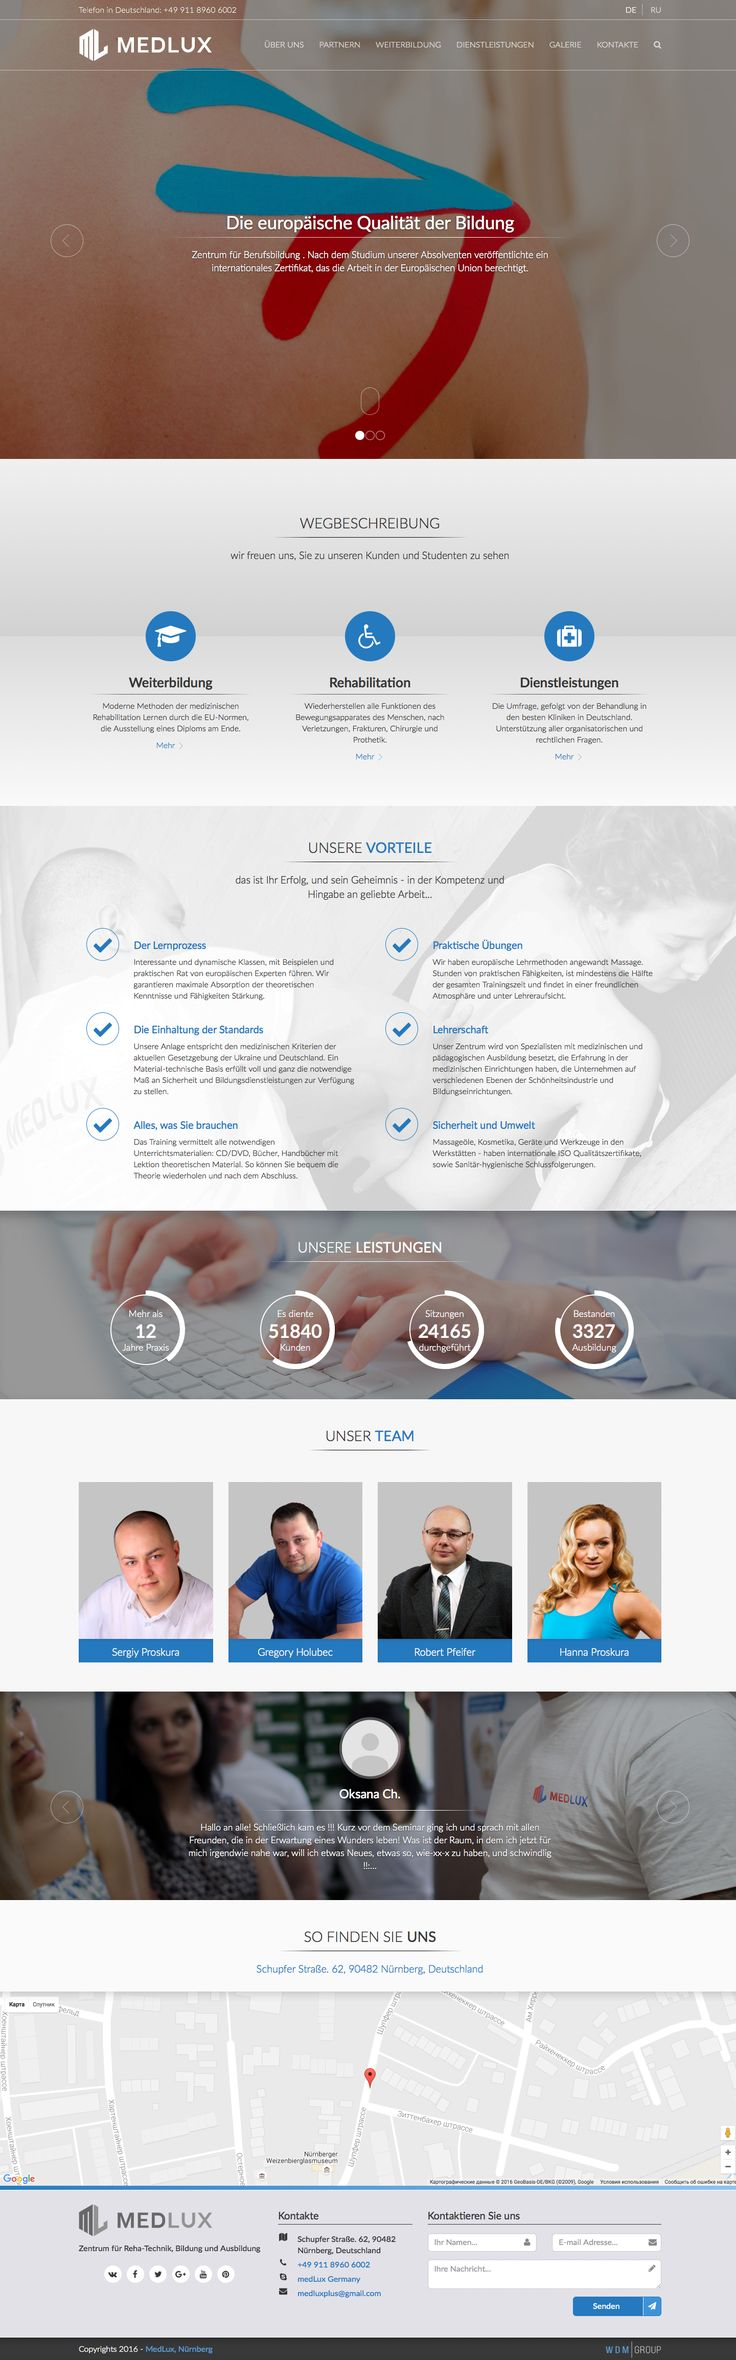 Promotional website for the German company «MedLux». Tags: #medlux, #webdesign, #promosite, #landing, #landingpage, #cover, #wdmg, #wdmgroup, #ukraine, #wdmgroupukraine